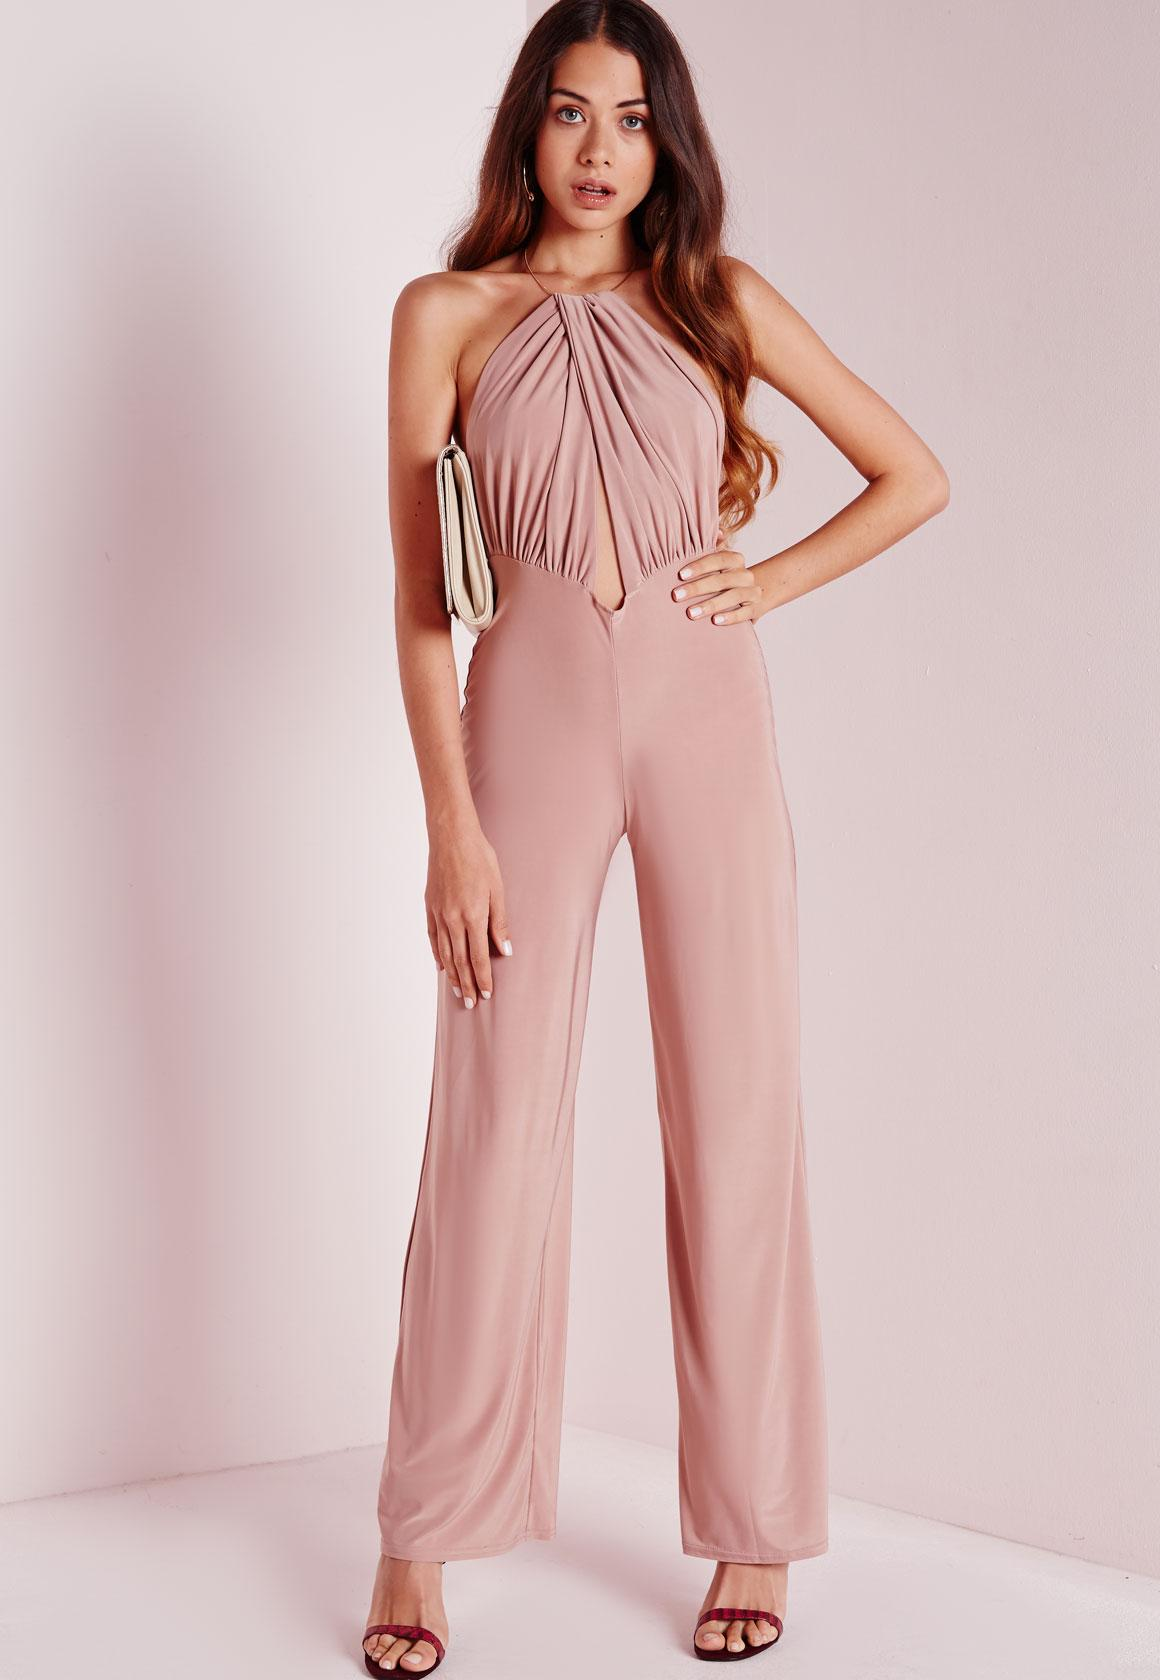 pink jumpsuit previous next bwcxcqy